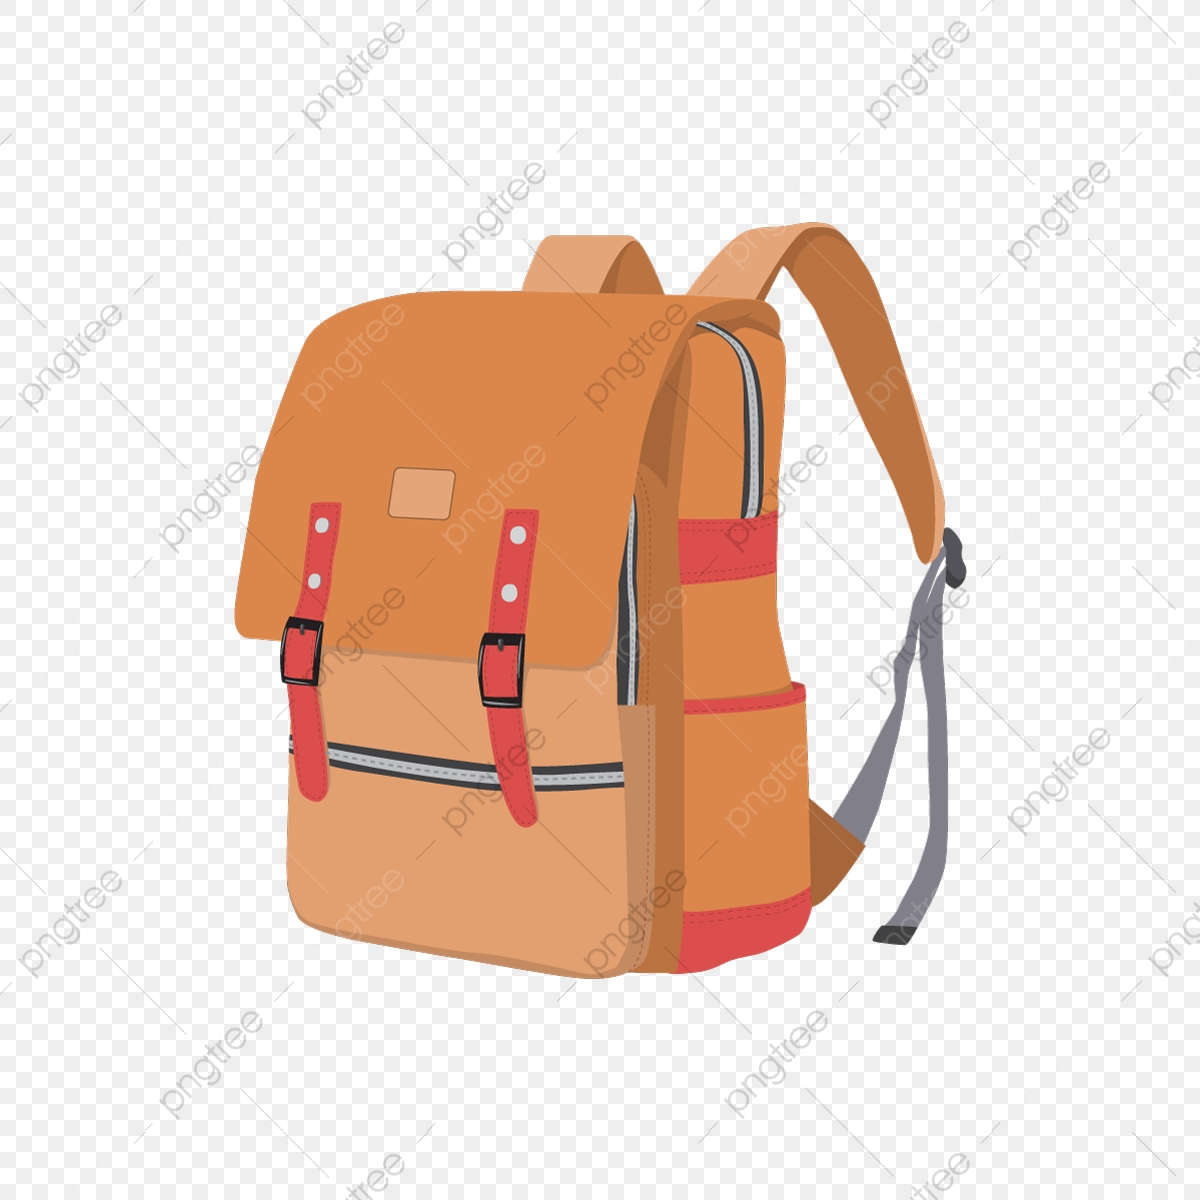 Leather School Bag Vector Red Bag School Bag Travel Bag Png And Vector With Transparent Background For Free Download